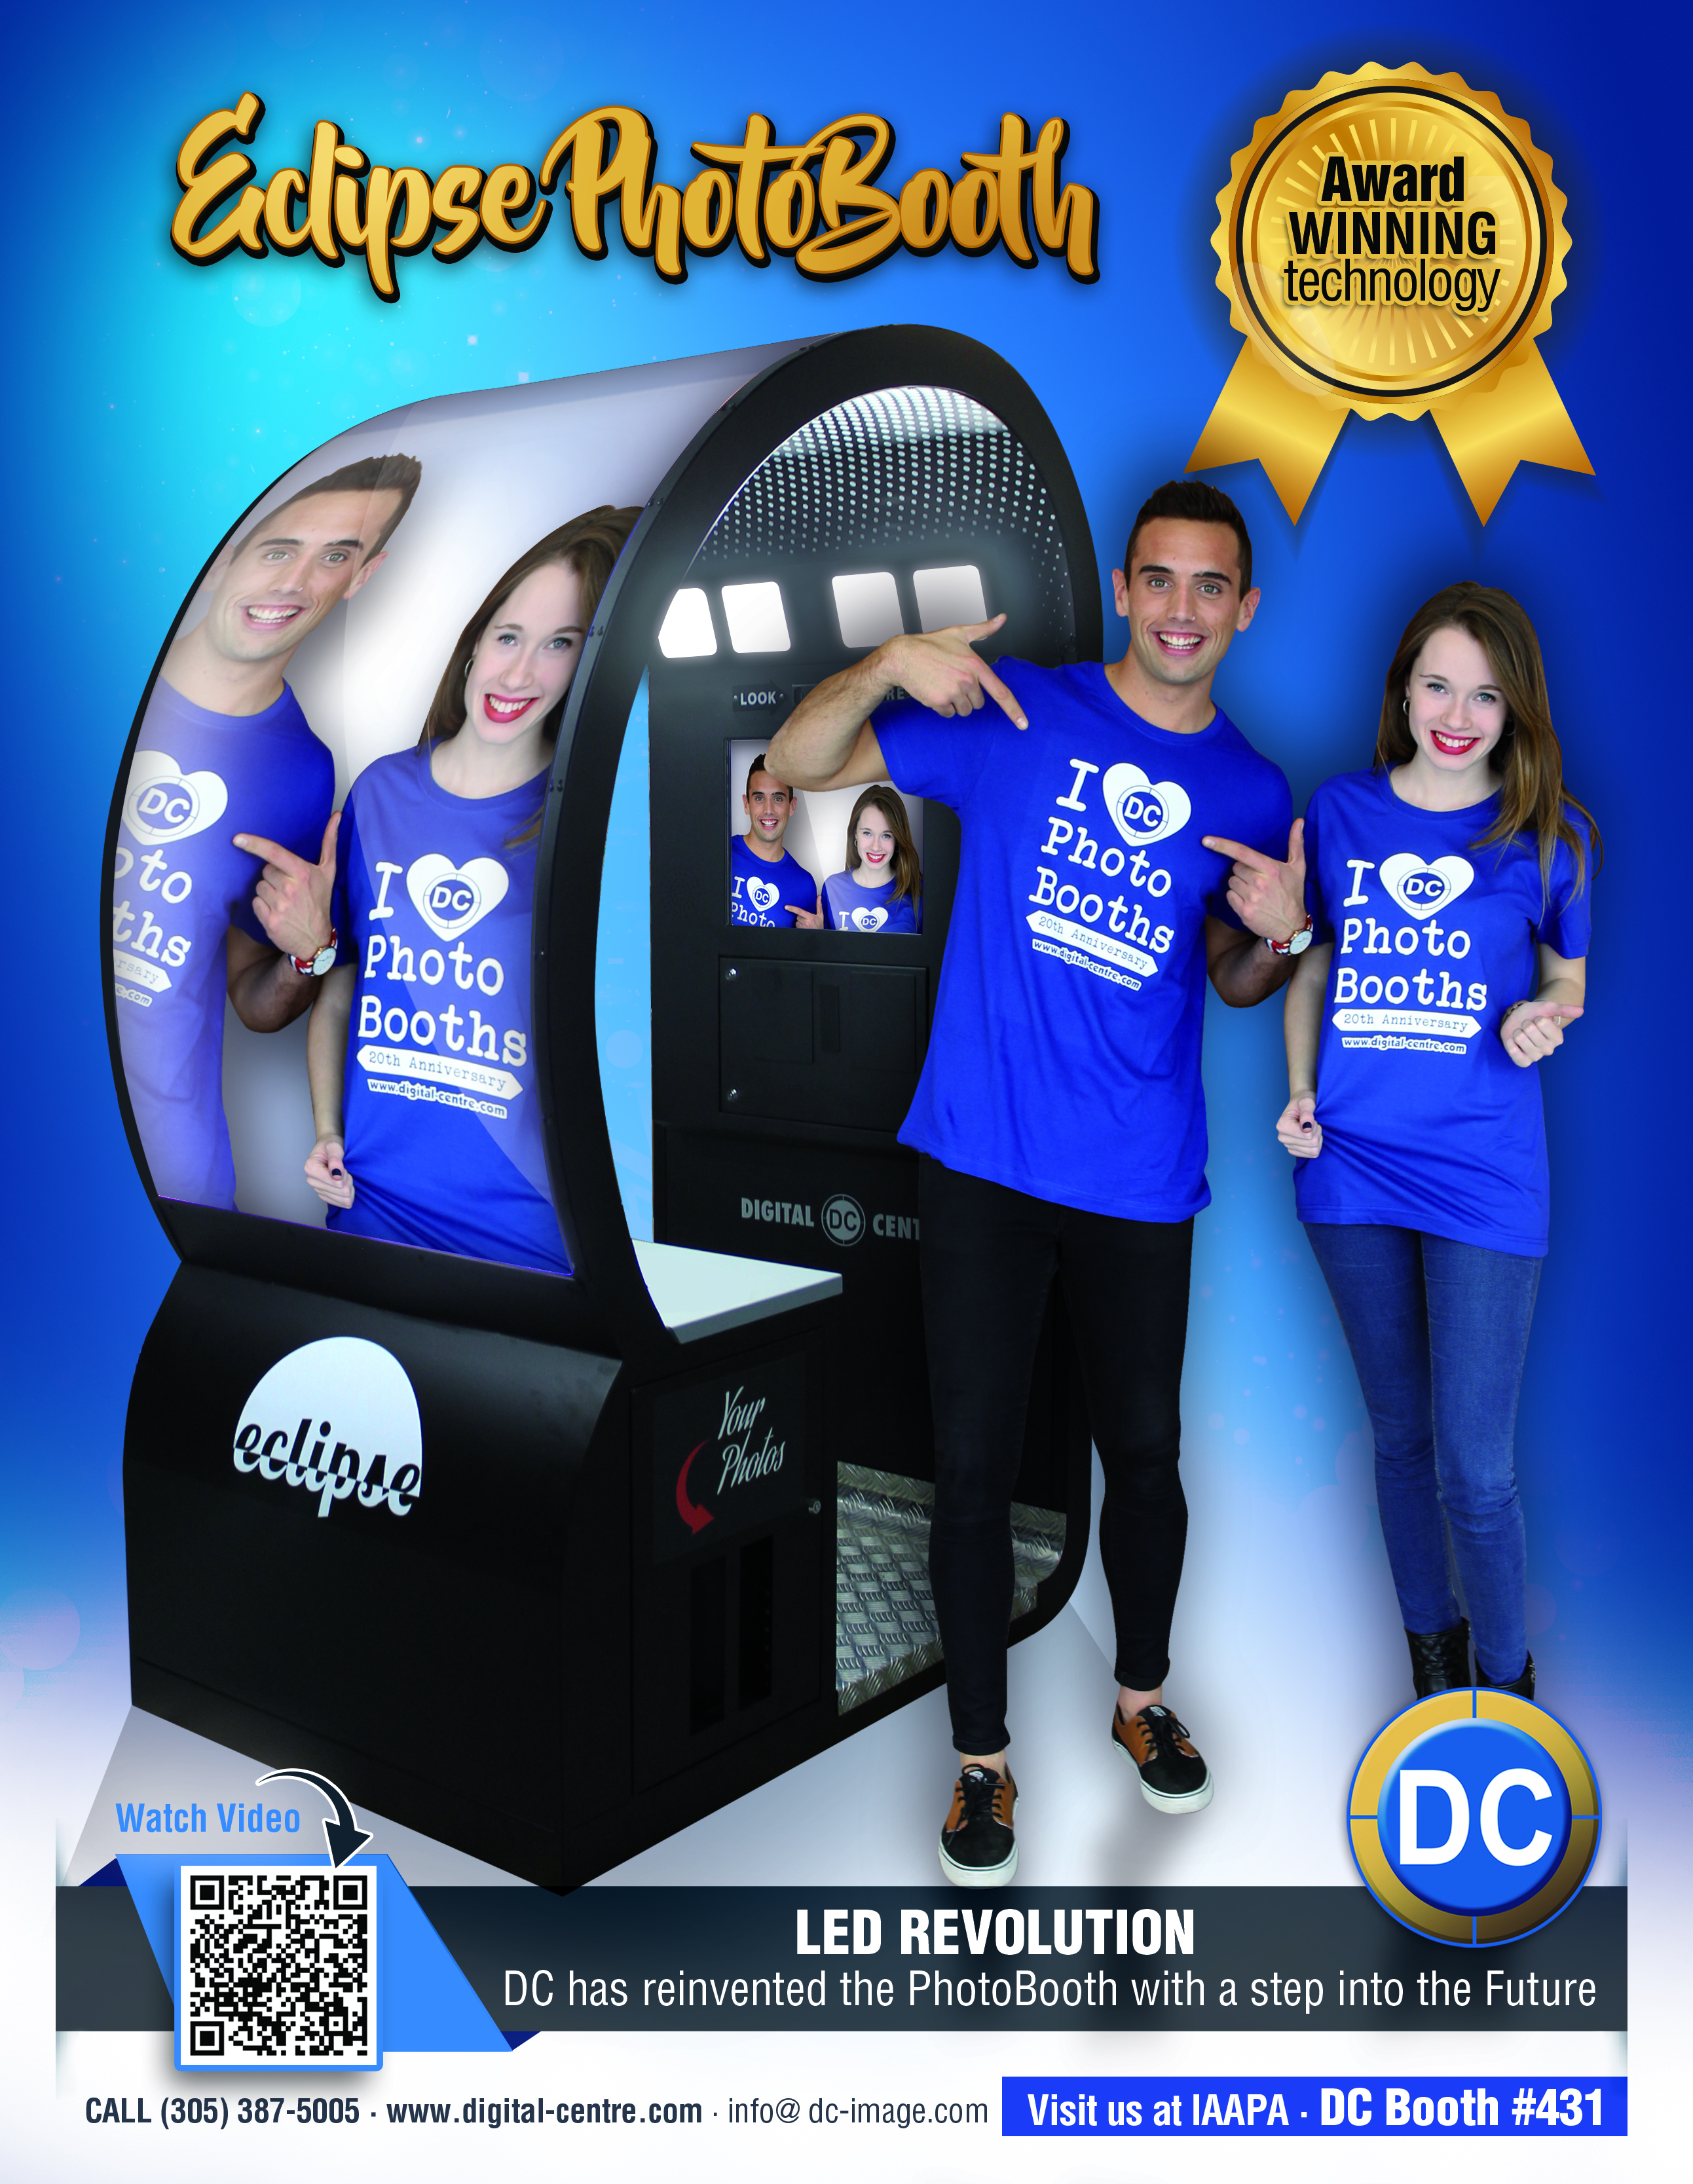 Brighten up your location with LED vW SC PhotoBooths.